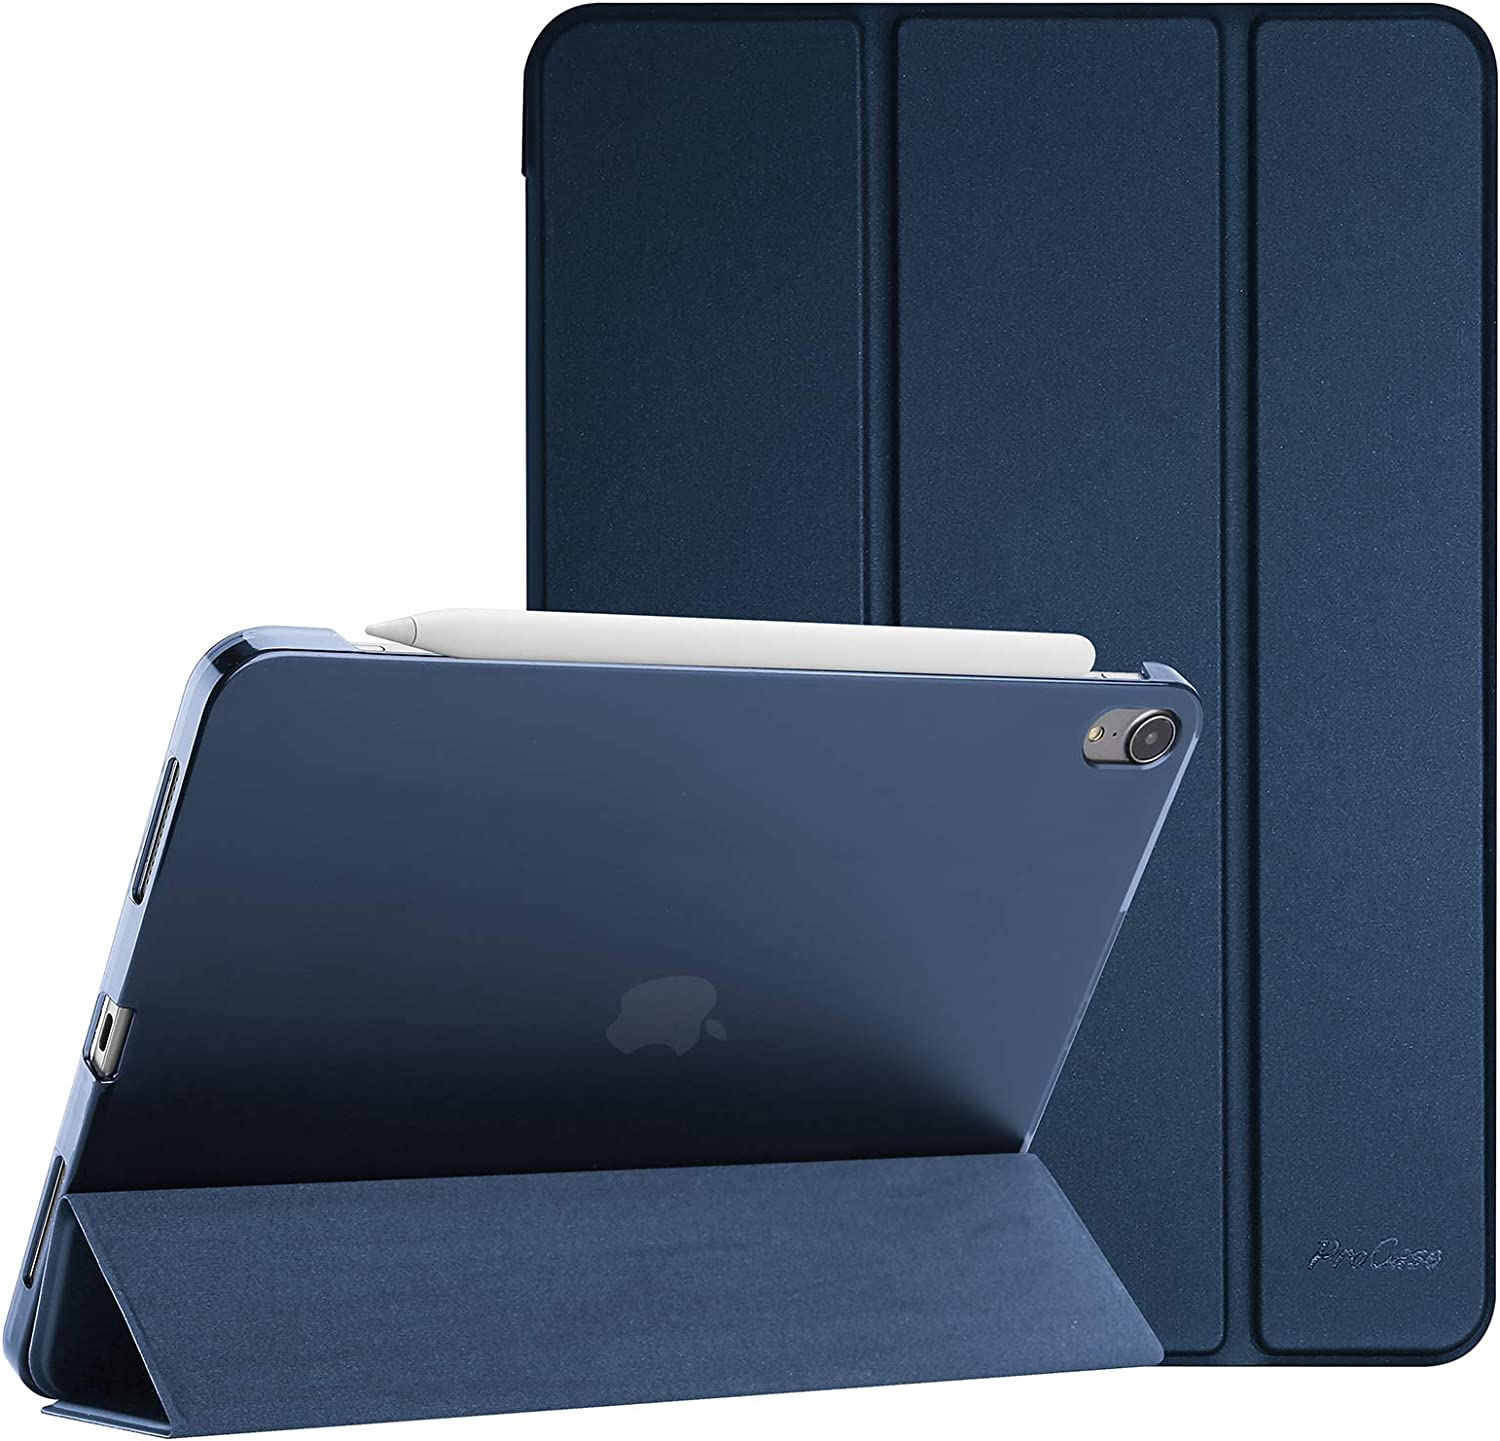 """ProCase iPad Air 4 Case 10.9 Inch 2020 iPad Air 4th Generation Case A2324 A2072 A2316 A2325, Slim Stand Hard Back Shell Protective Smart Cover Cases for iPad Air 10.9"""" 4th Gen 2020-Navy"""